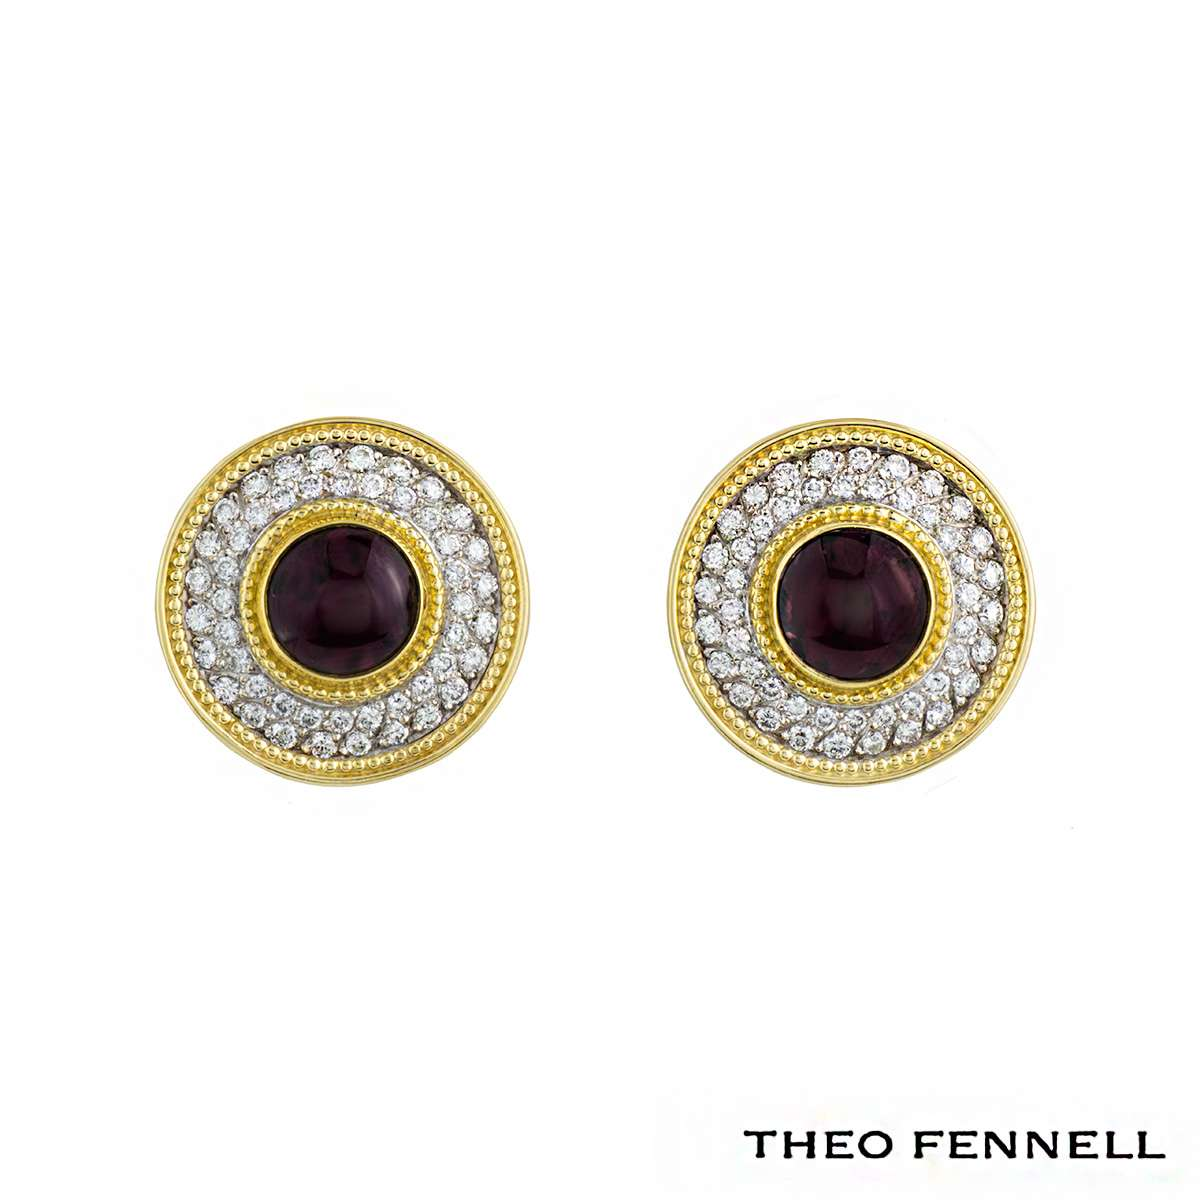 Theo Fennell 18k Yellow Gold Diamond & Pink Tourmaline Earrings 2.16ct